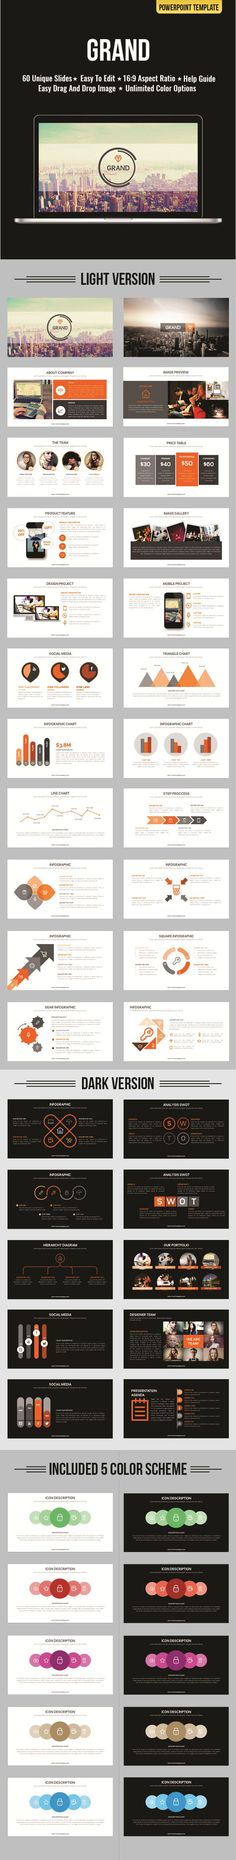 Grand PowerPoint Template #powerpoint #powerpointtemplate #presentation Download: http://graphicriver.net/item/grand-powerpoint/11924852?ref=ksioks